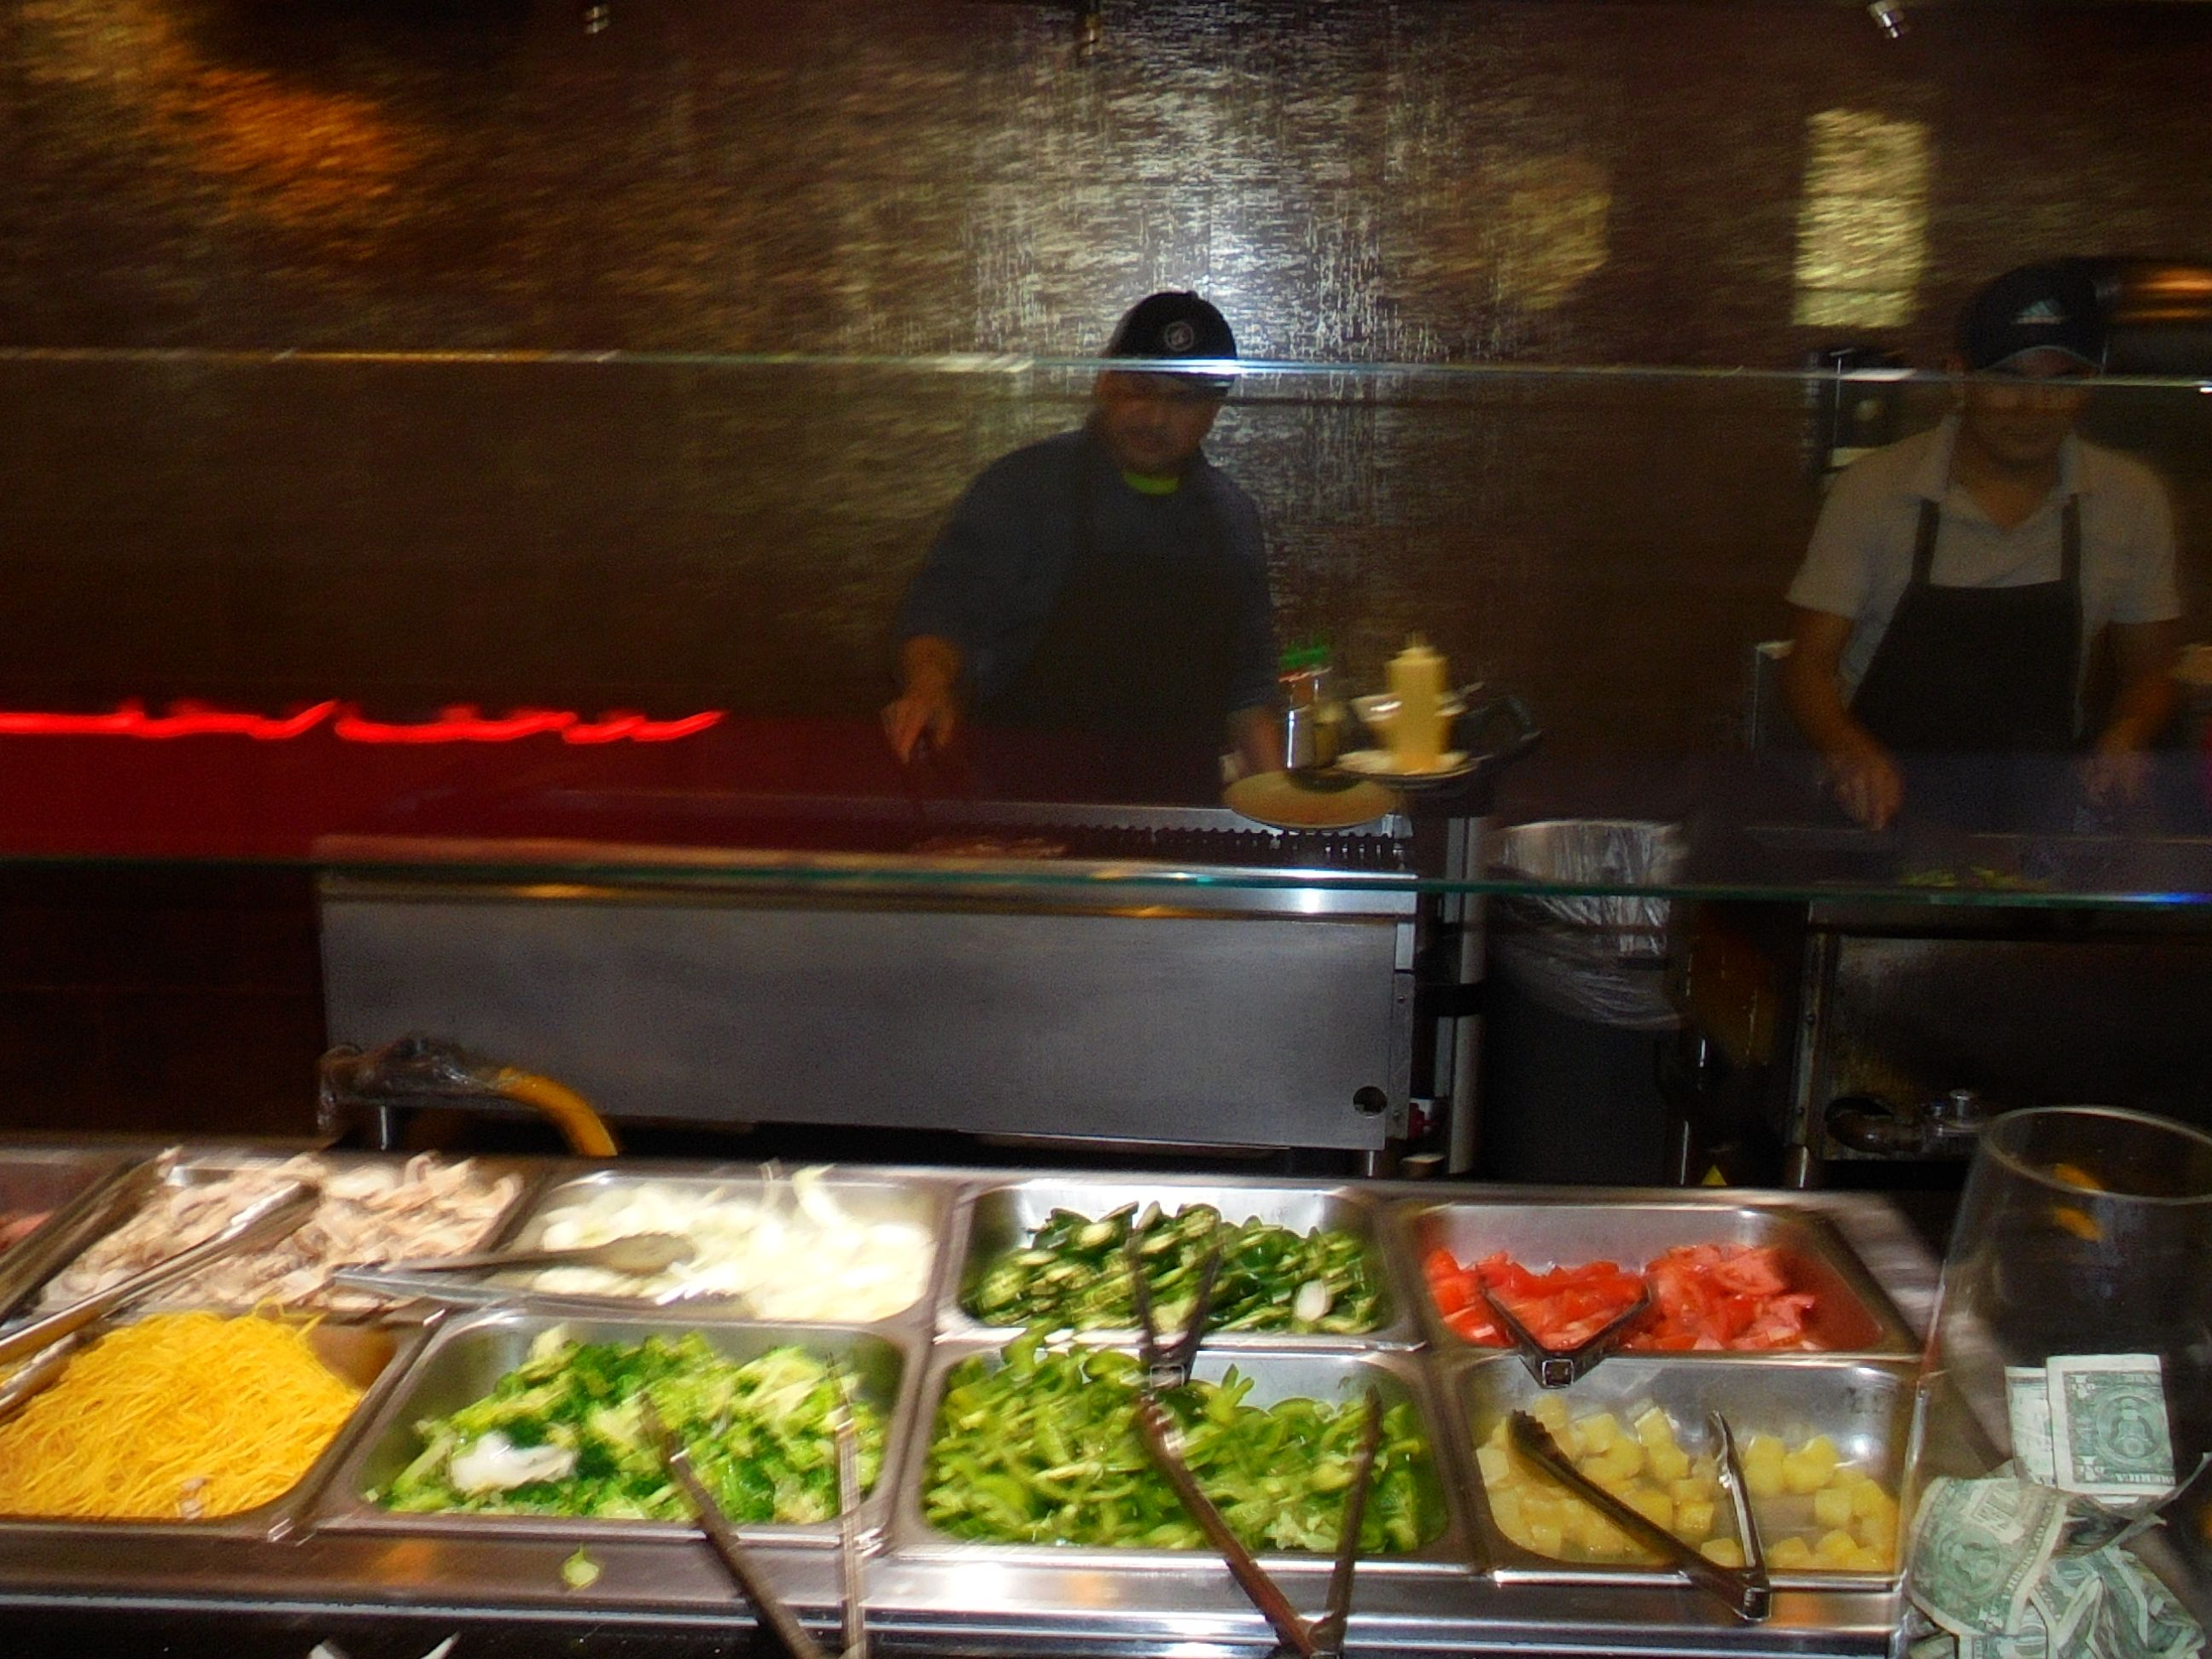 #Panasian #Philadelphia has #fine #dining for #corporate #professionals & the #family